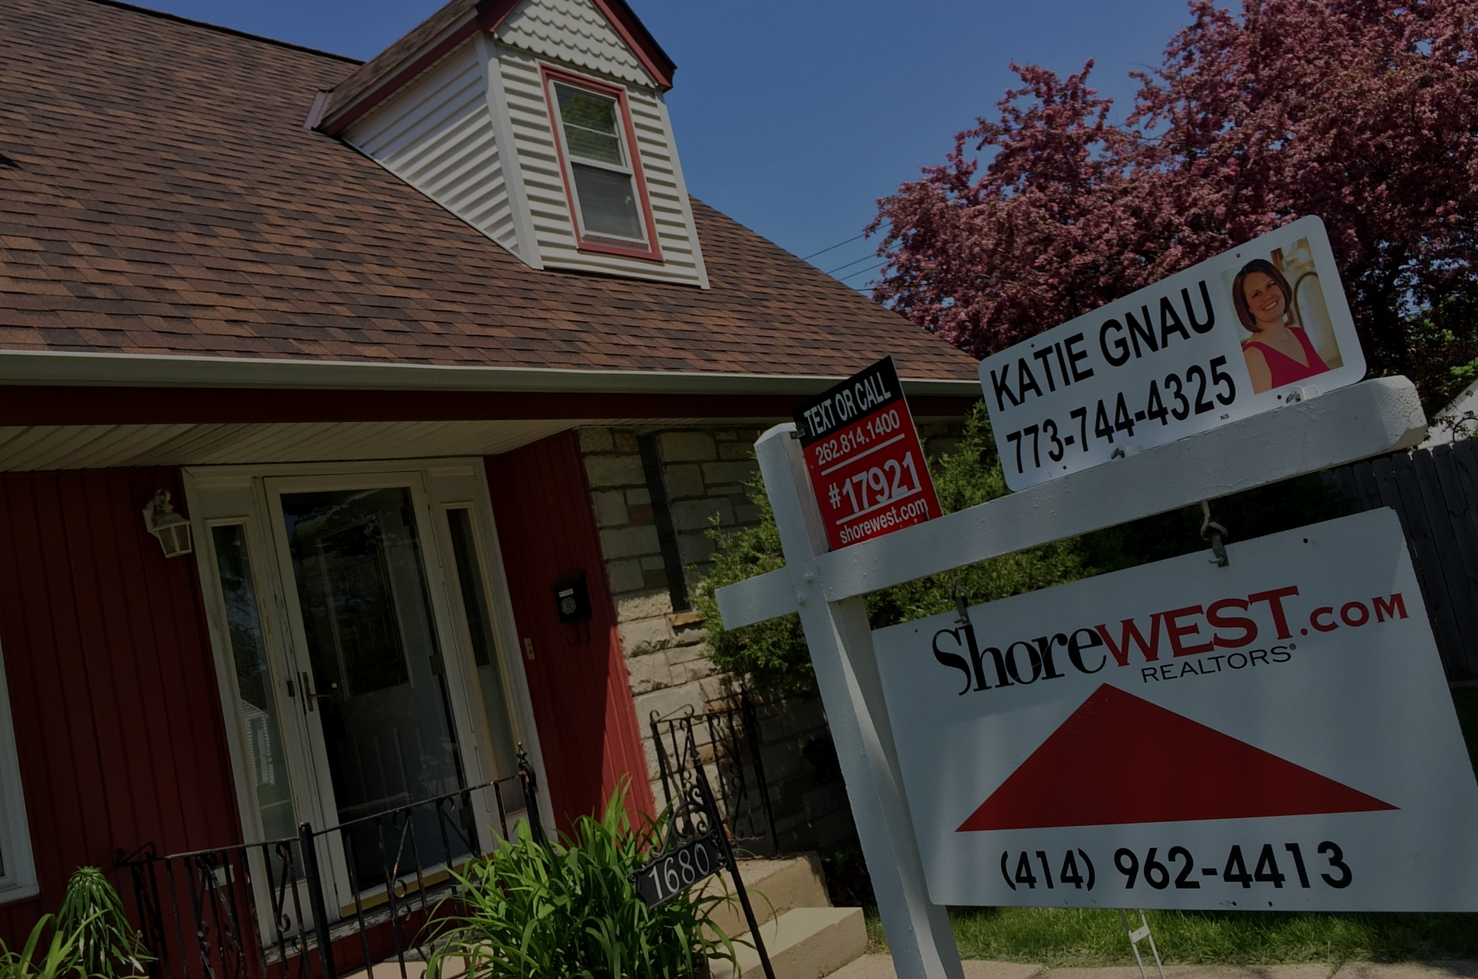 Katie Gnau Knows... real estate